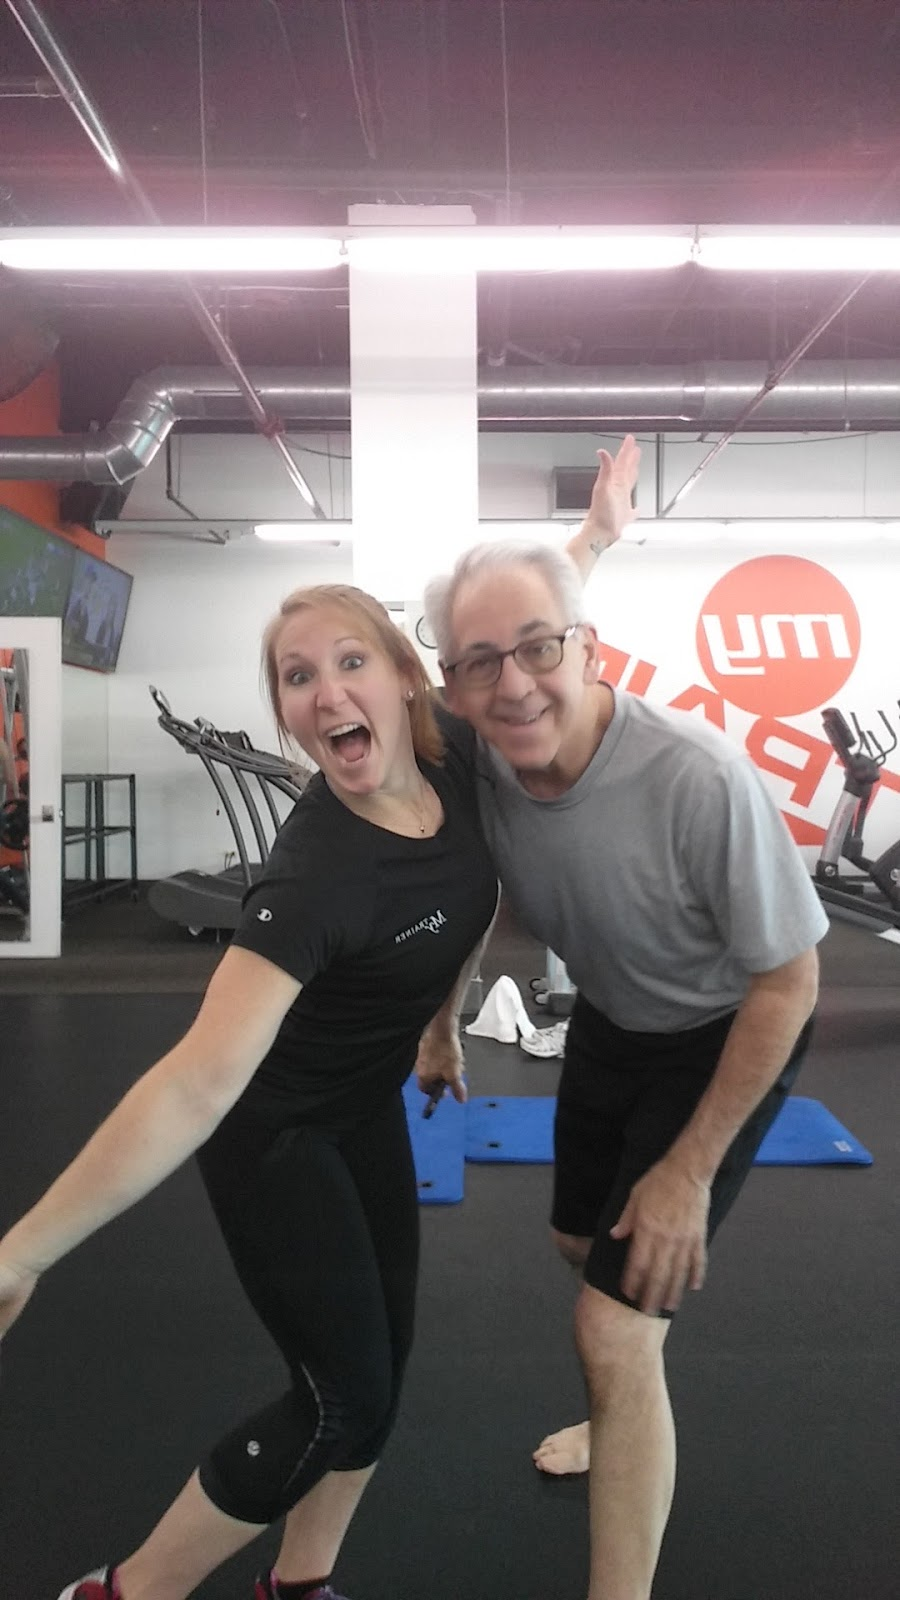 Revive Fitness - gym  | Photo 8 of 8 | Address: 2724 Dundee Rd #1, Northbrook, IL 60062, USA | Phone: (847) 780-4421